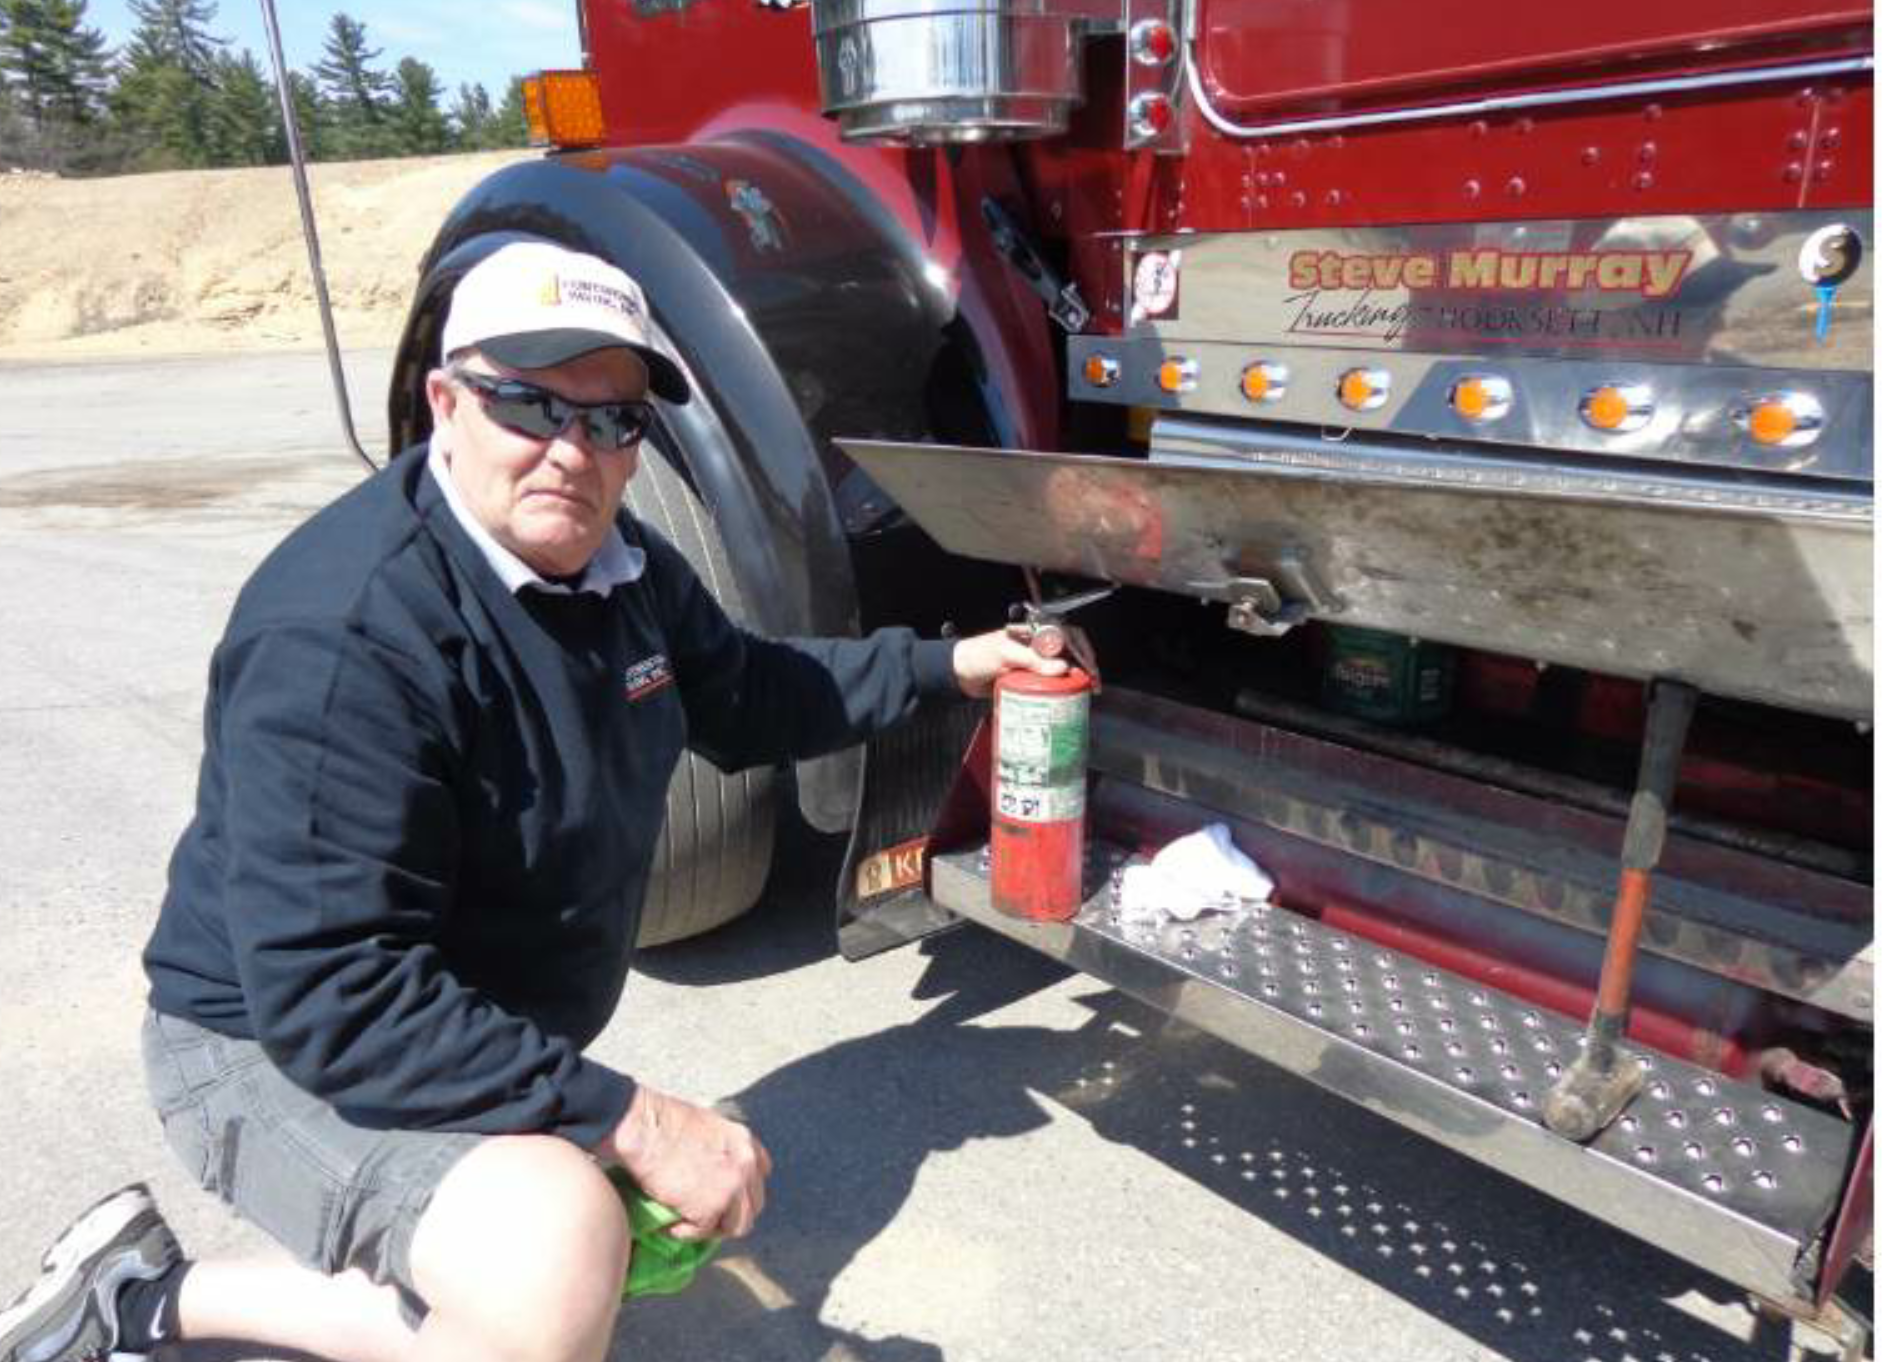 Every truck driver should have the basics for safety. Make sure you double-check the expiration date on your fire extinguisher as part of your weekly routine maintenance. One of these days, you'll need to replace it. Also notice the coffee can Murray keeps under his step. That's not coffee. He keeps an assortment of nuts, bolts and screws in the can. The pipe you see under there is used at the back of the truck for leverage to open the chute to facilitate handwork.